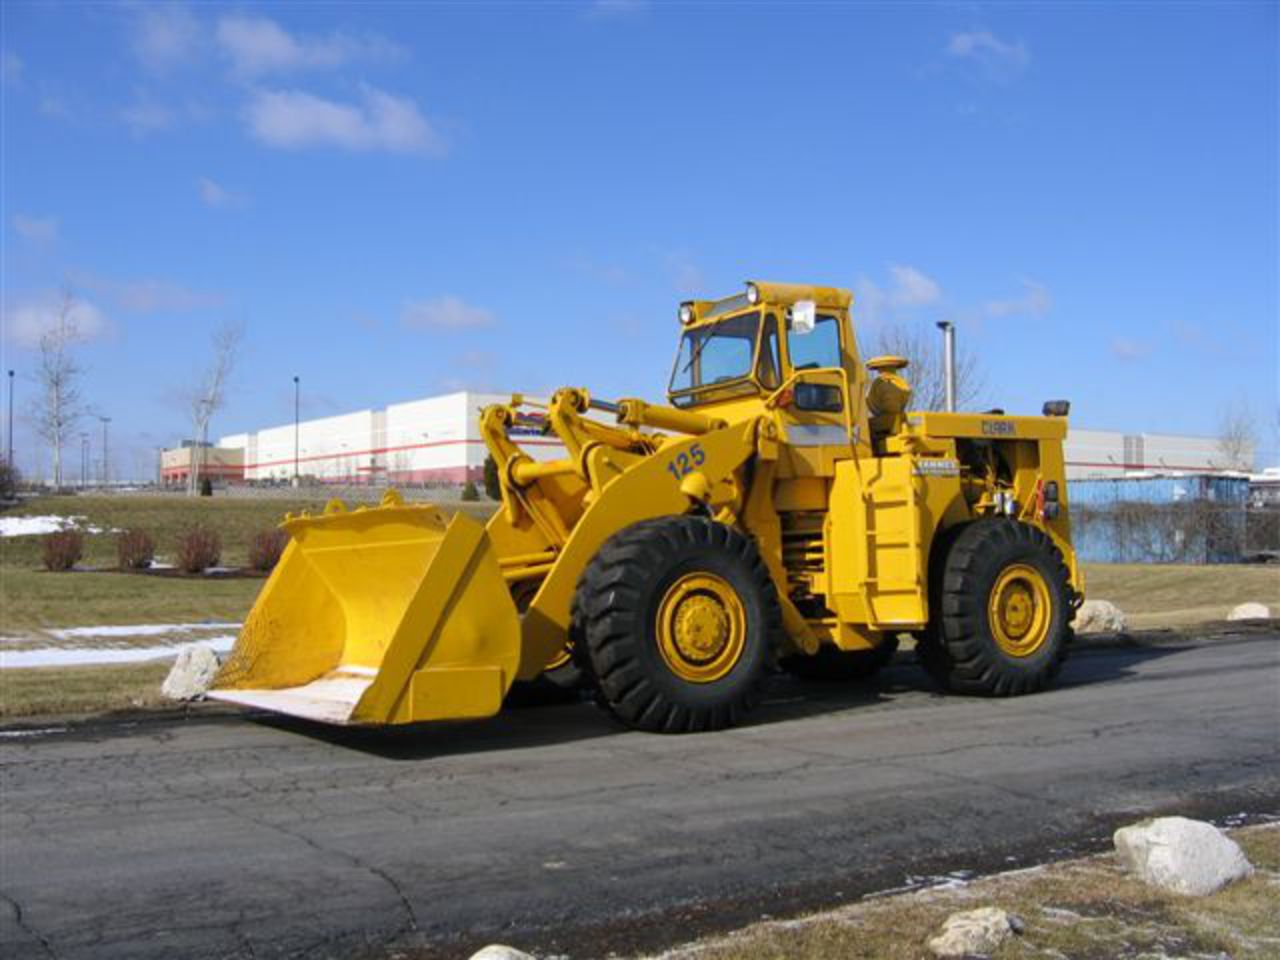 clark michigan pale caricatrici  34275_kammes-125-clark-michigan-endloader